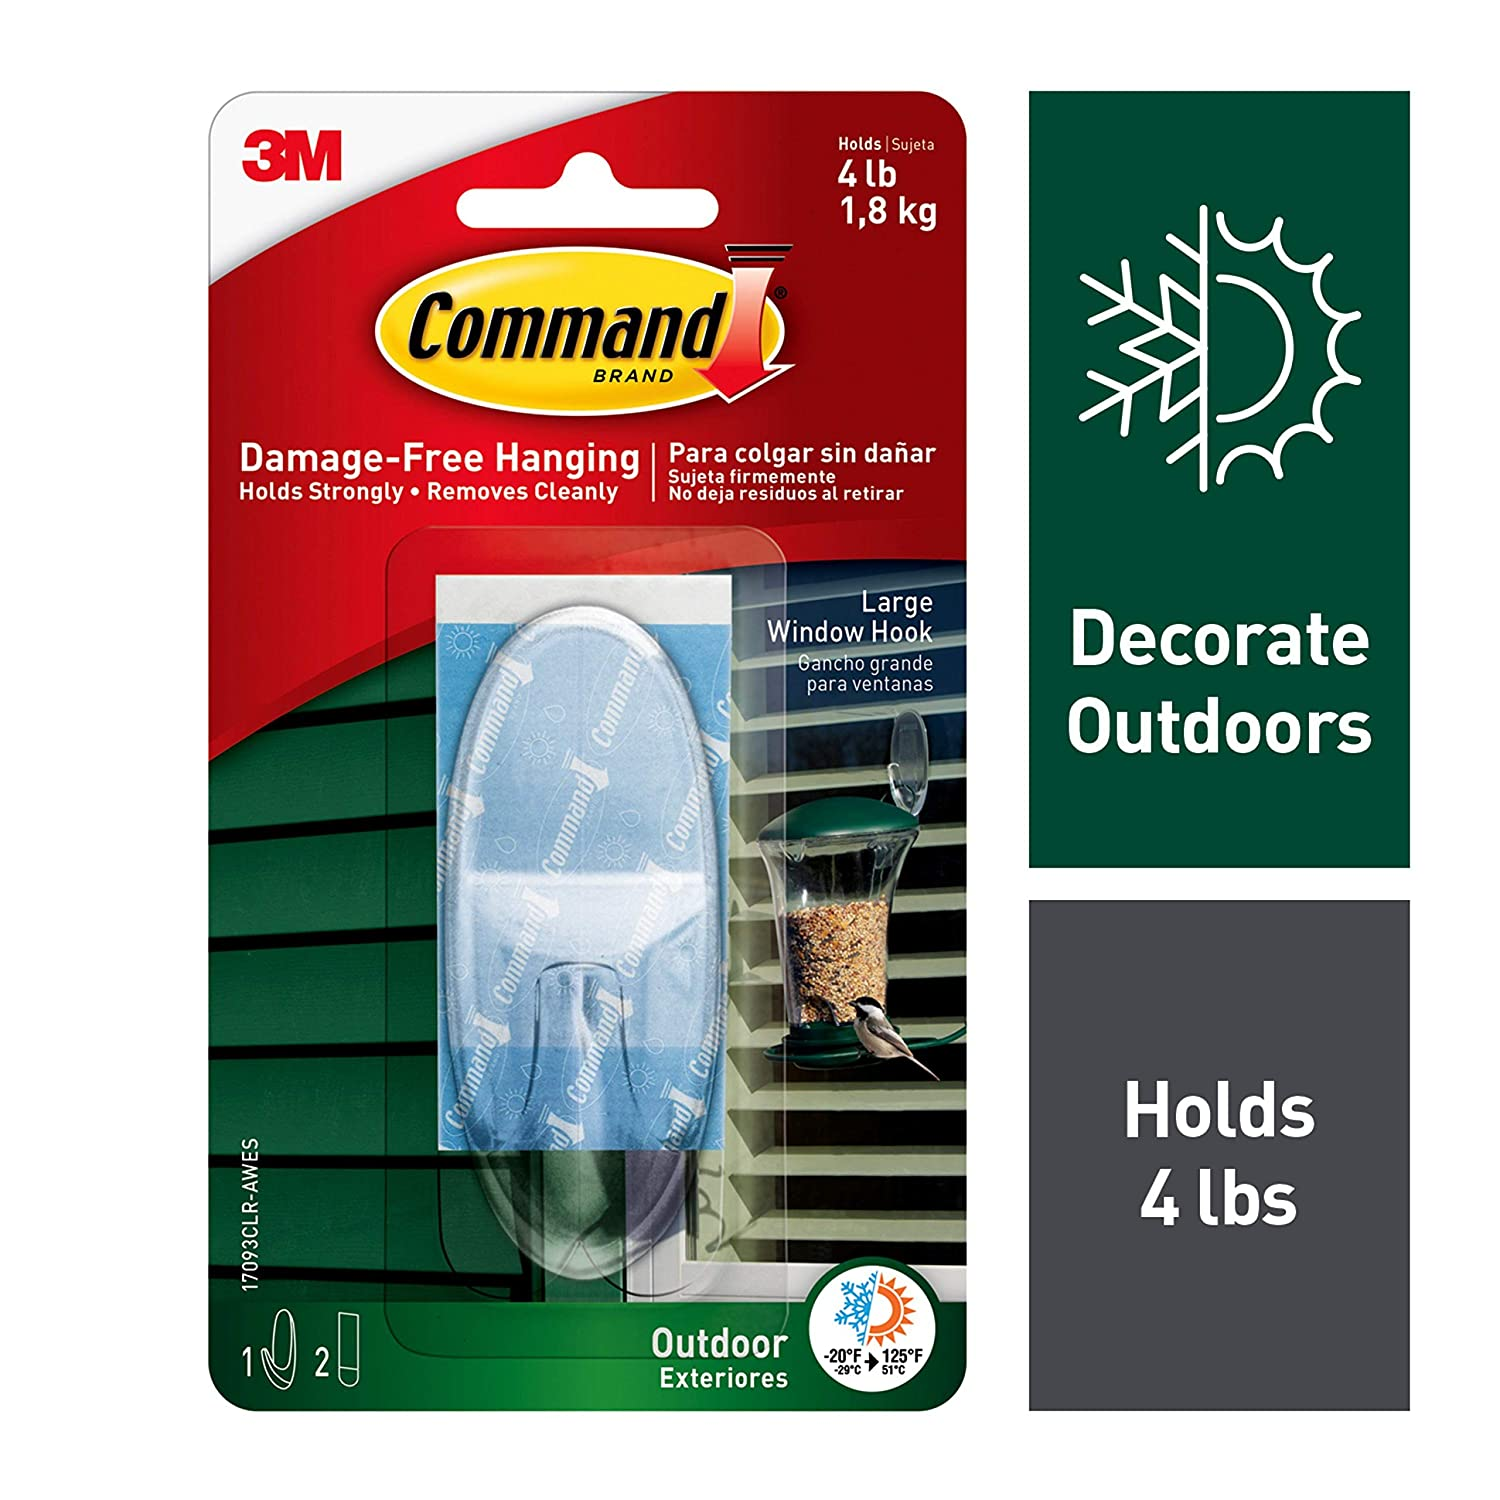 Amazon.com: Command Outdoor Window Hook R43R31, Large, Clear, 6-Hook: Home & Kitchen